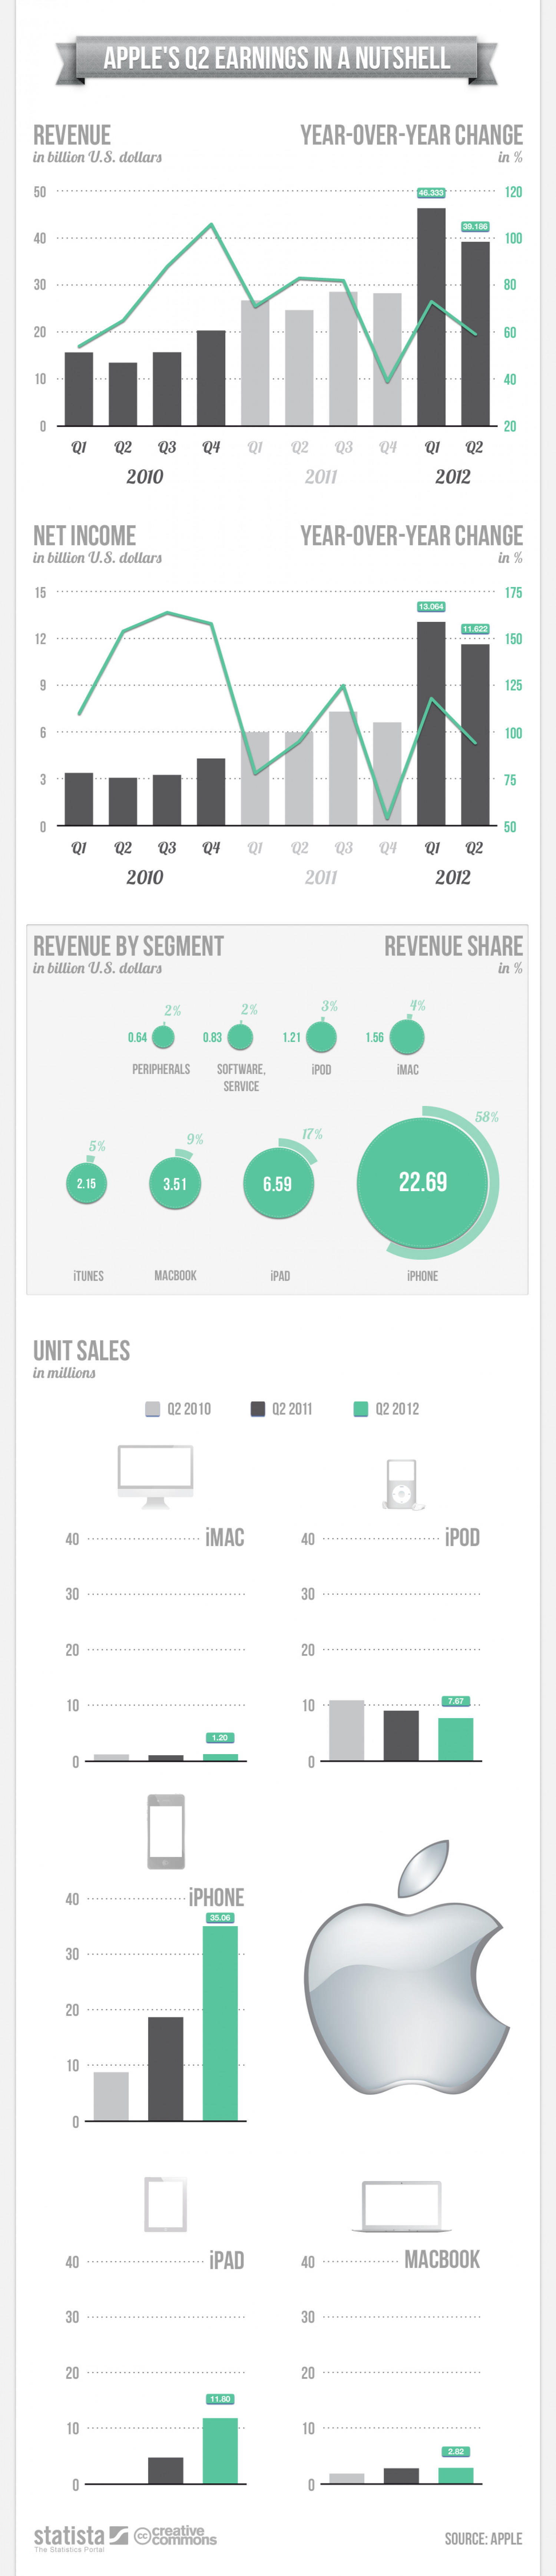 Apple's Q2 Earnings in a Nutshell Infographic